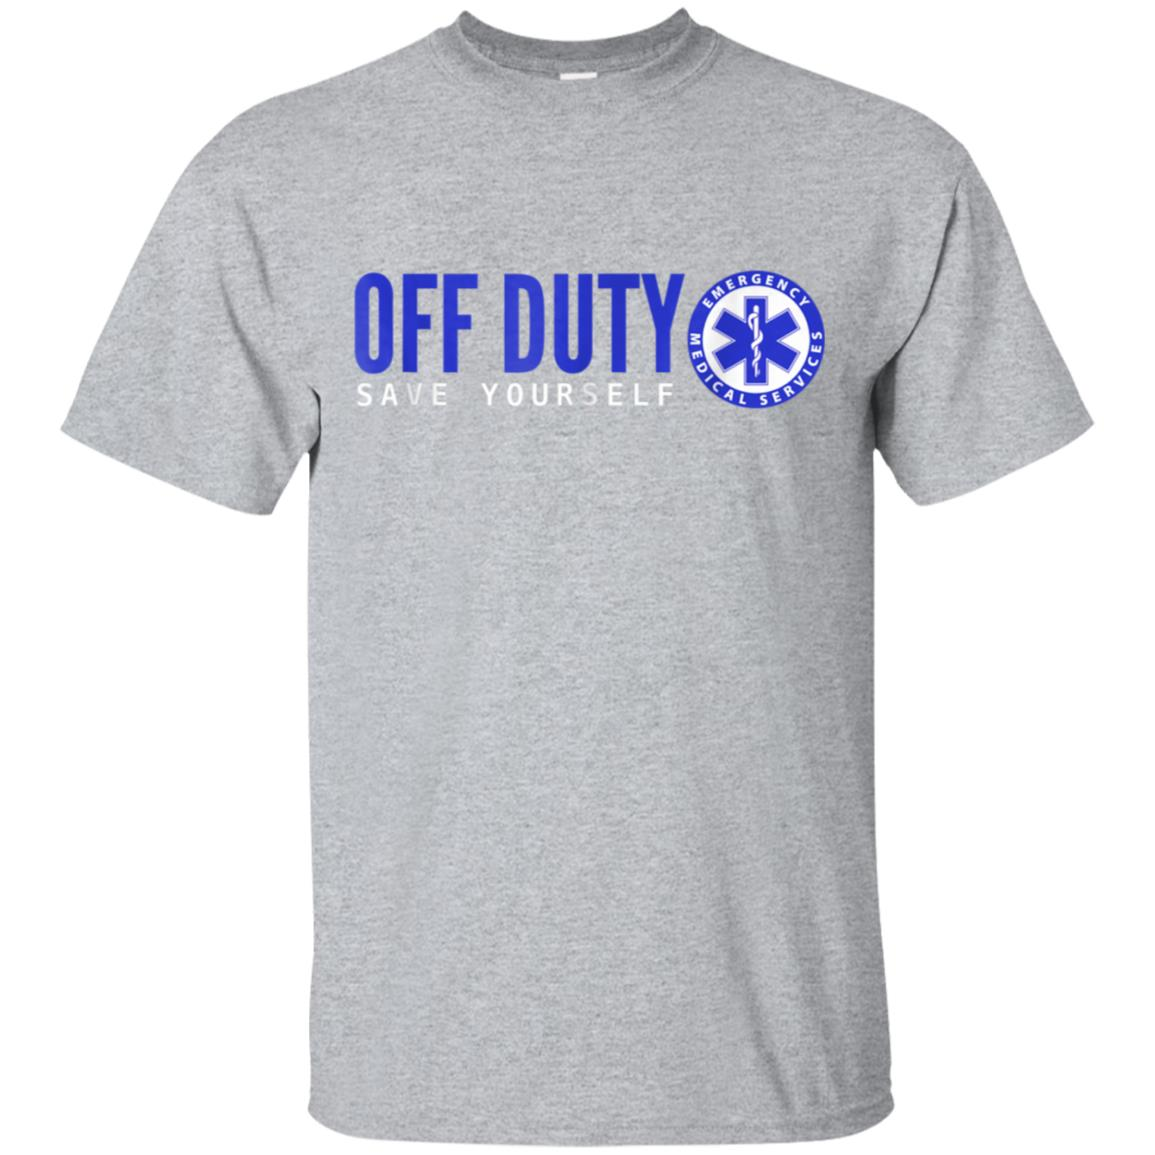 Funny EMS T-Shirt for EMTs Off Duty Save Yourself 99promocode